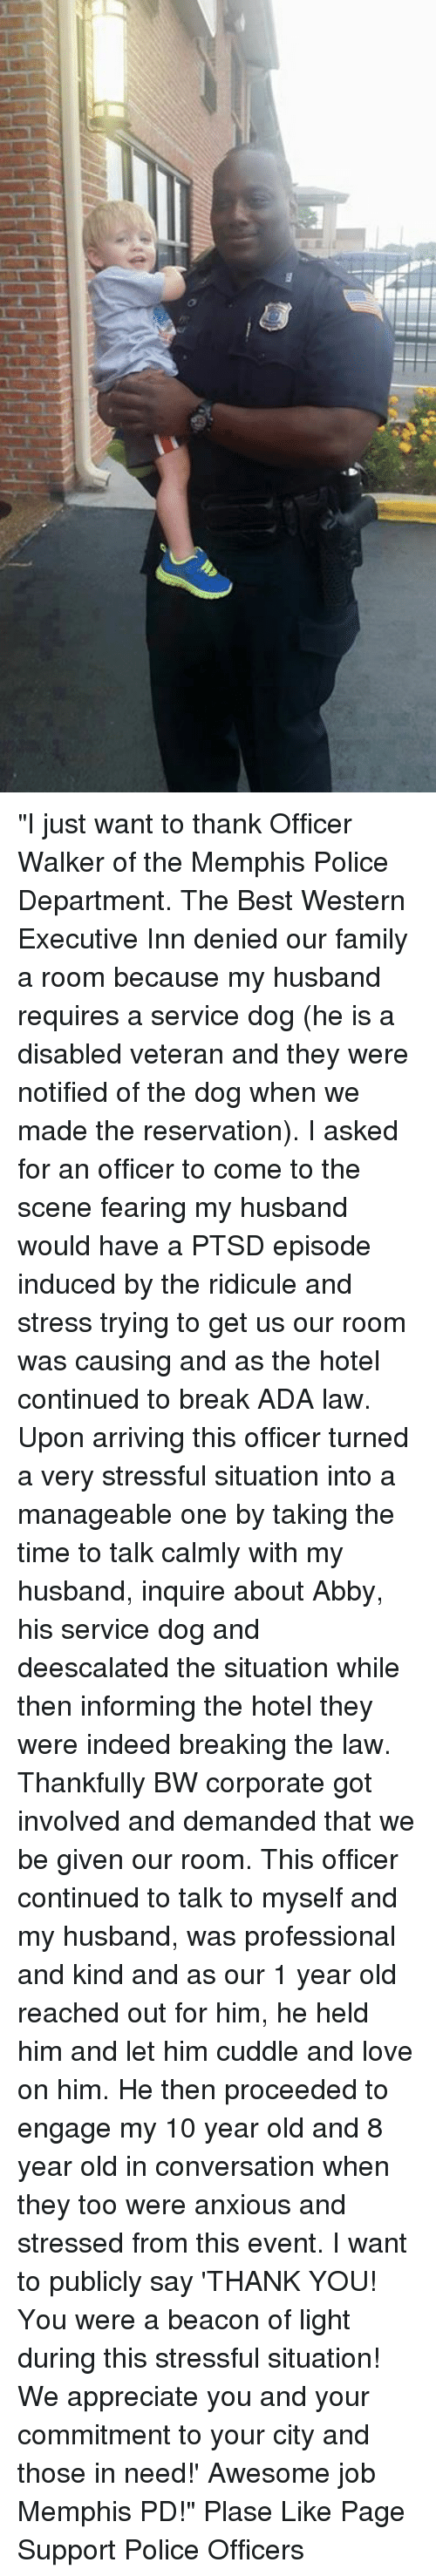 """departed: """"I just want to thank Officer Walker of the Memphis Police Department. The Best Western Executive Inn denied our family a room because my husband requires a service dog (he is a disabled veteran and they were notified of the dog when we made the reservation). I asked for an officer to come to the scene fearing my husband would have a PTSD episode induced by the ridicule and stress trying to get us our room was causing and as the hotel continued to break ADA law. Upon arriving this officer turned a very stressful situation into a manageable one by taking the time to talk calmly with my husband, inquire about Abby, his service dog and deescalated the situation while then informing the hotel they were indeed breaking the law. Thankfully BW corporate got involved and demanded that we be given our room. This officer continued to talk to myself and my husband, was professional and kind and as our 1 year old reached out for him, he held him and let him cuddle and love on him. He then proceeded to engage my 10 year old and 8 year old in conversation when they too were anxious and stressed from this event. I want to publicly say 'THANK YOU! You were a beacon of light during this stressful situation! We appreciate you and your commitment to your city and those in need!' Awesome job Memphis PD!"""" Plase Like Page Support Police Officers"""